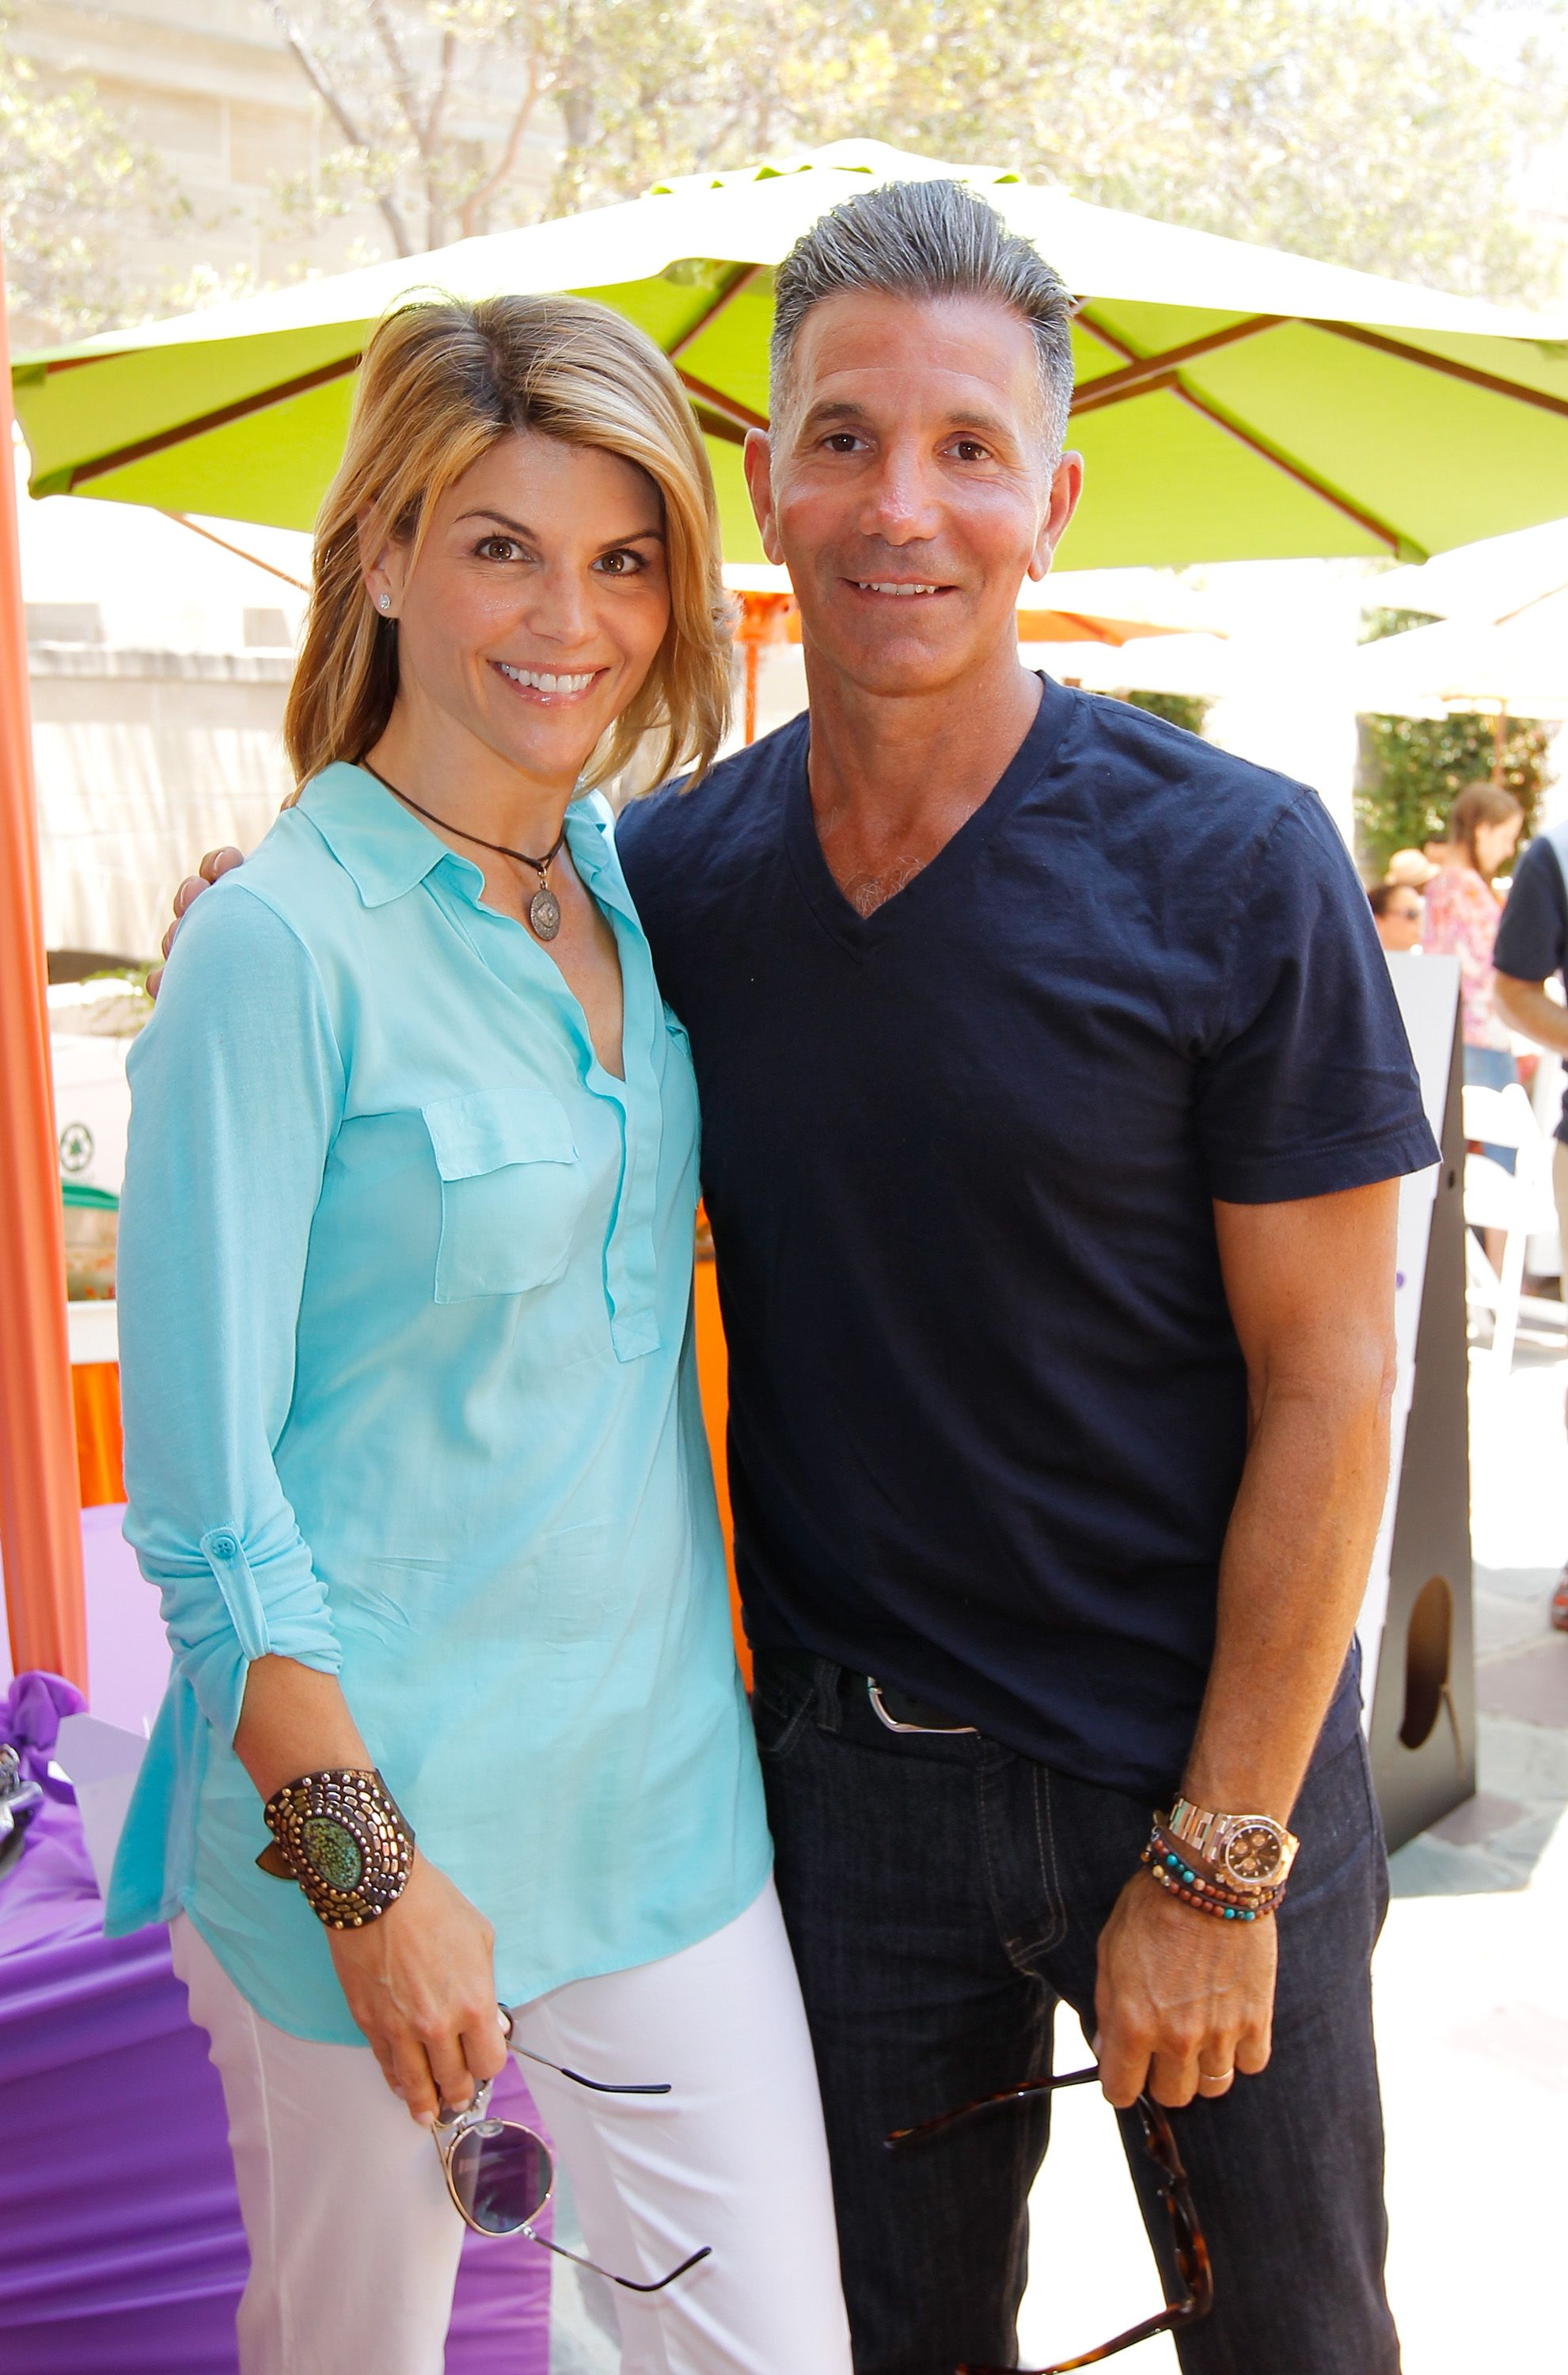 Lori Loughlin and Mossimo Giannulli during the 6th Annual Kidstock Music And Arts Festival Sponsored By Hudson Jeans at Greystone Mansion on June 3, 2012 in Beverly Hills, California.   Source: Getty Images